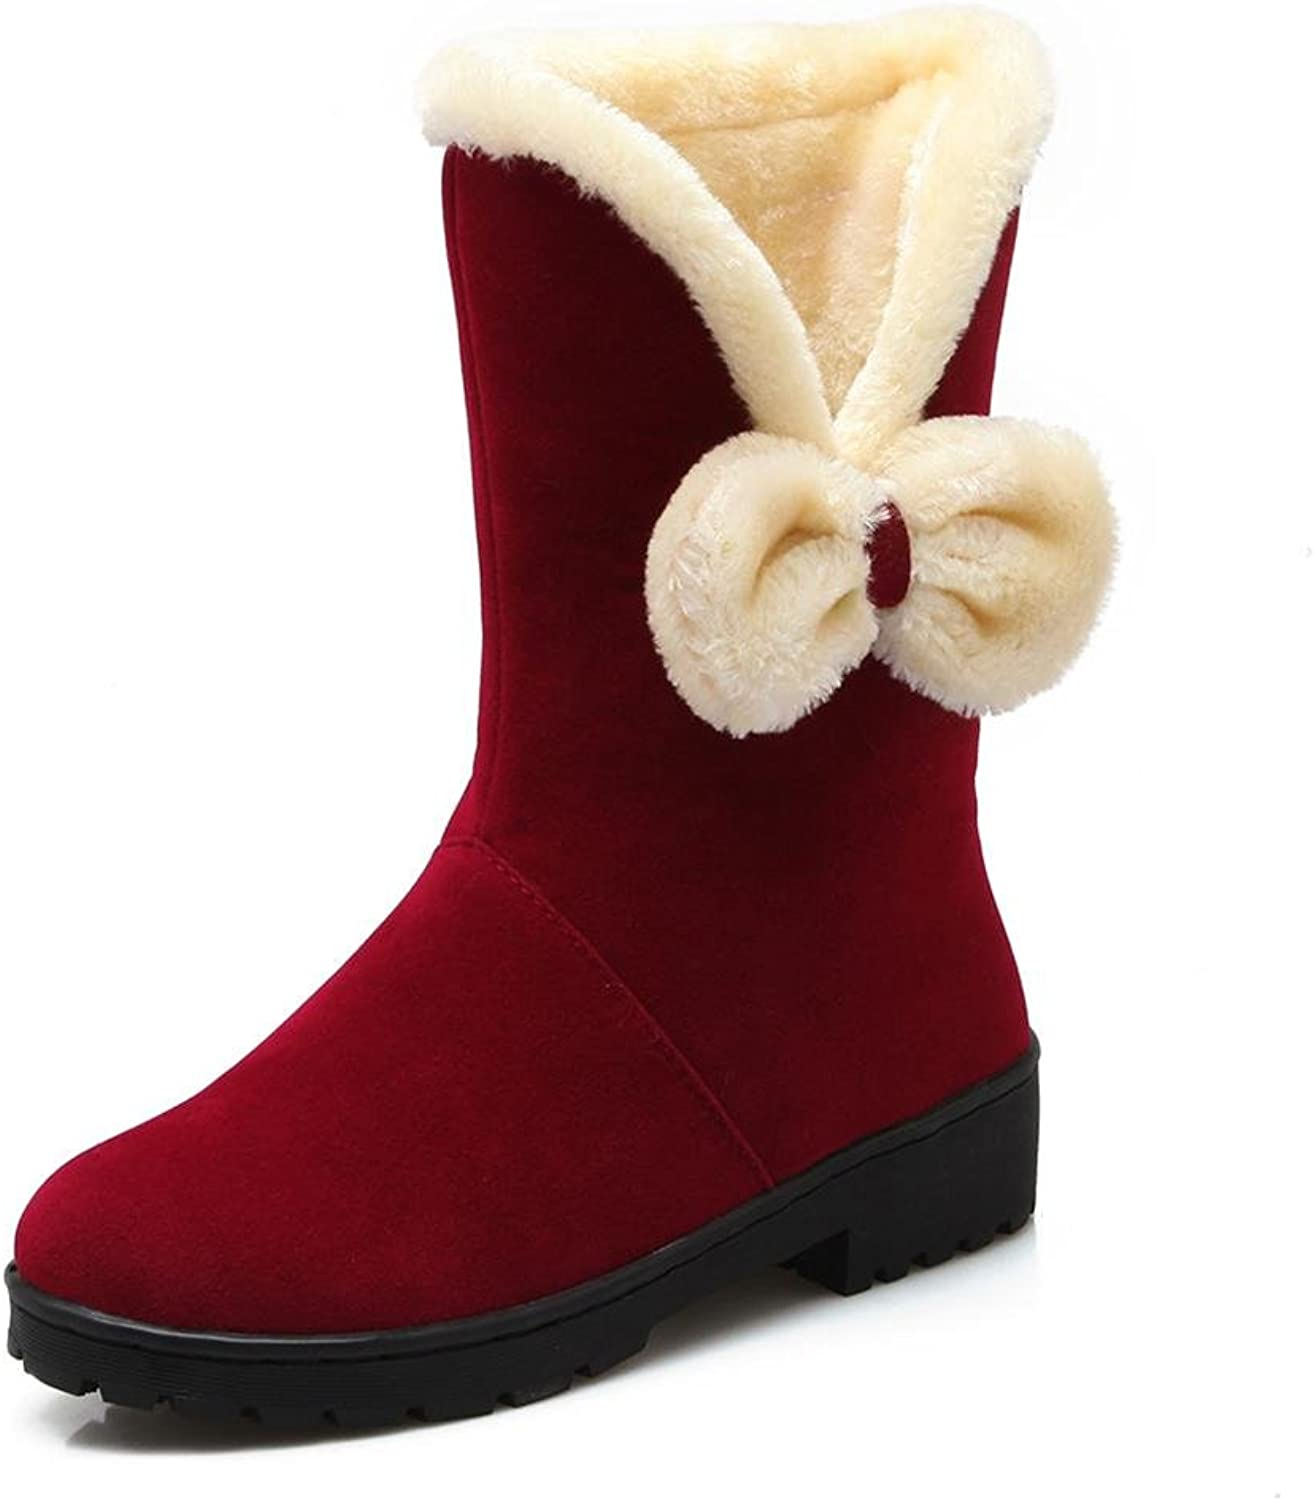 L&L Ladies Large Size Female shoes Bow tie Scrub Snow Boots Sleeve Flat Female Boots